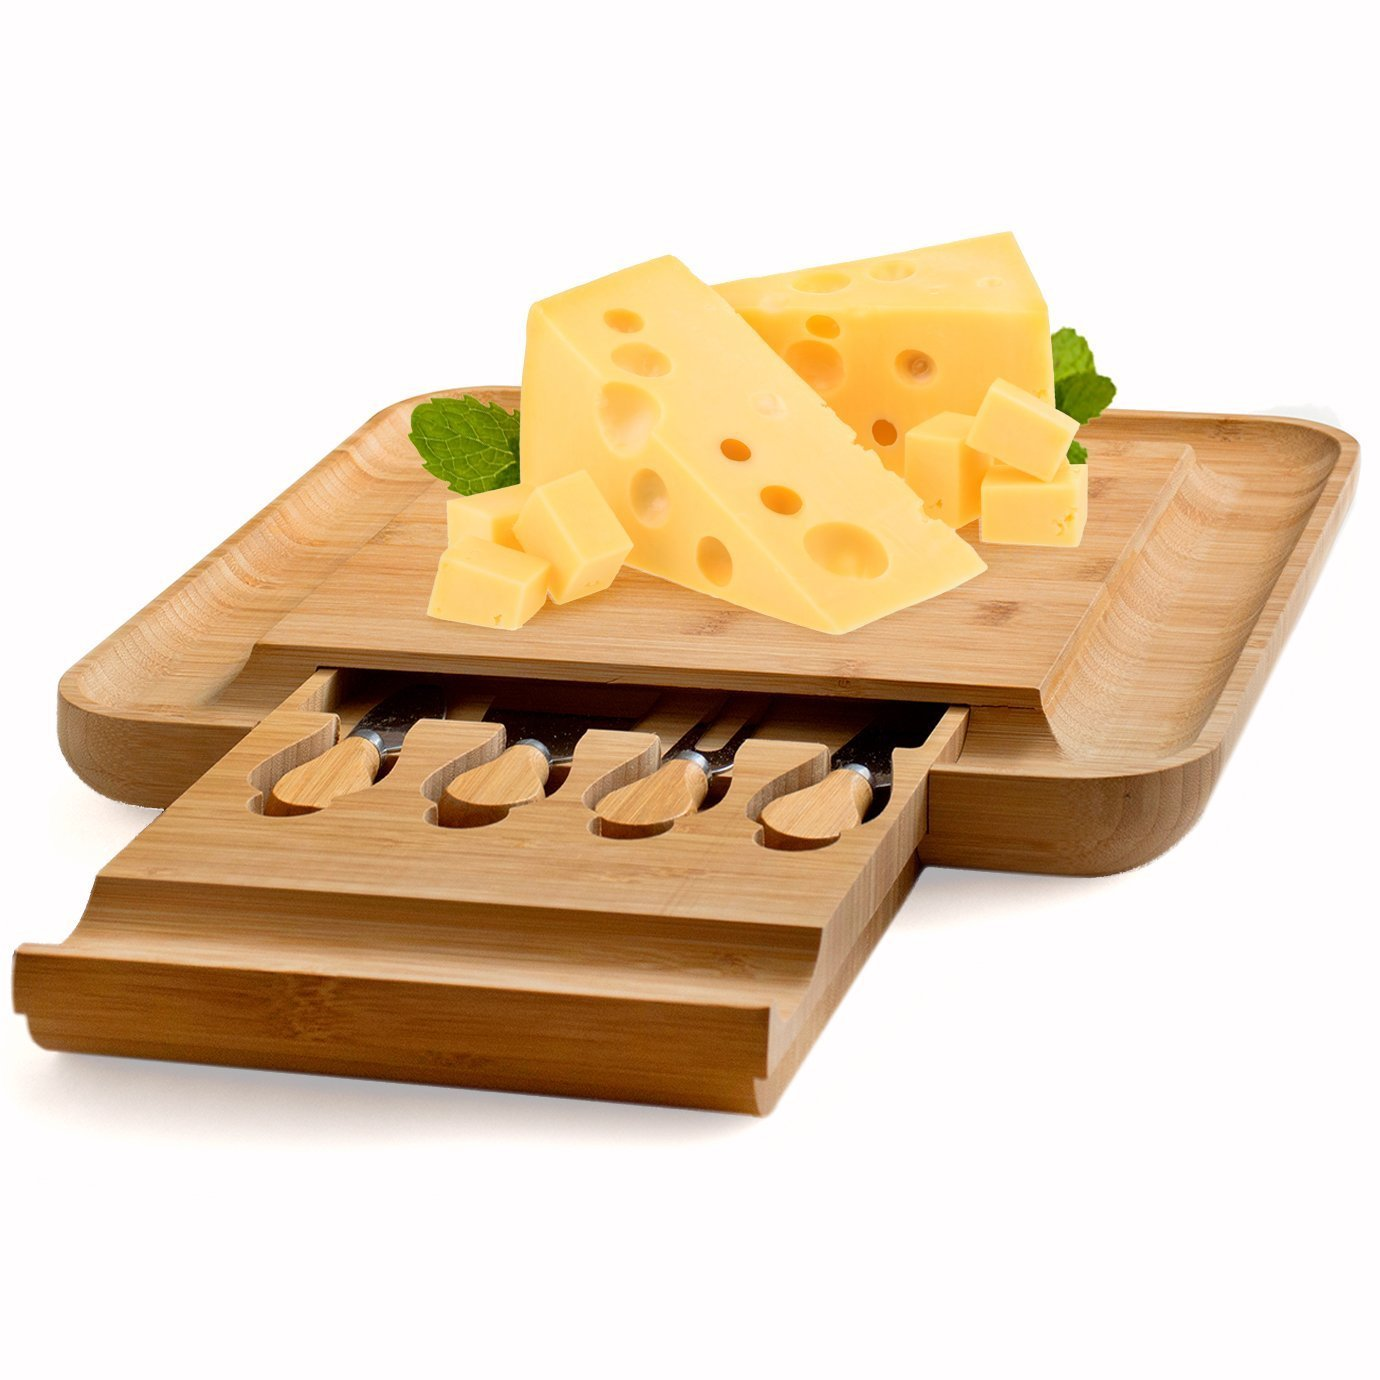 Bamboo Cheese Board with Cutlery Set, Wood Charcuterie Platter and Serving Meat Board with Slide-Out Drawer with 4 Stainless Steel Knife and Server Set - Perfect Gift Idea. By Bambusi by Bambüsi (Image #8)